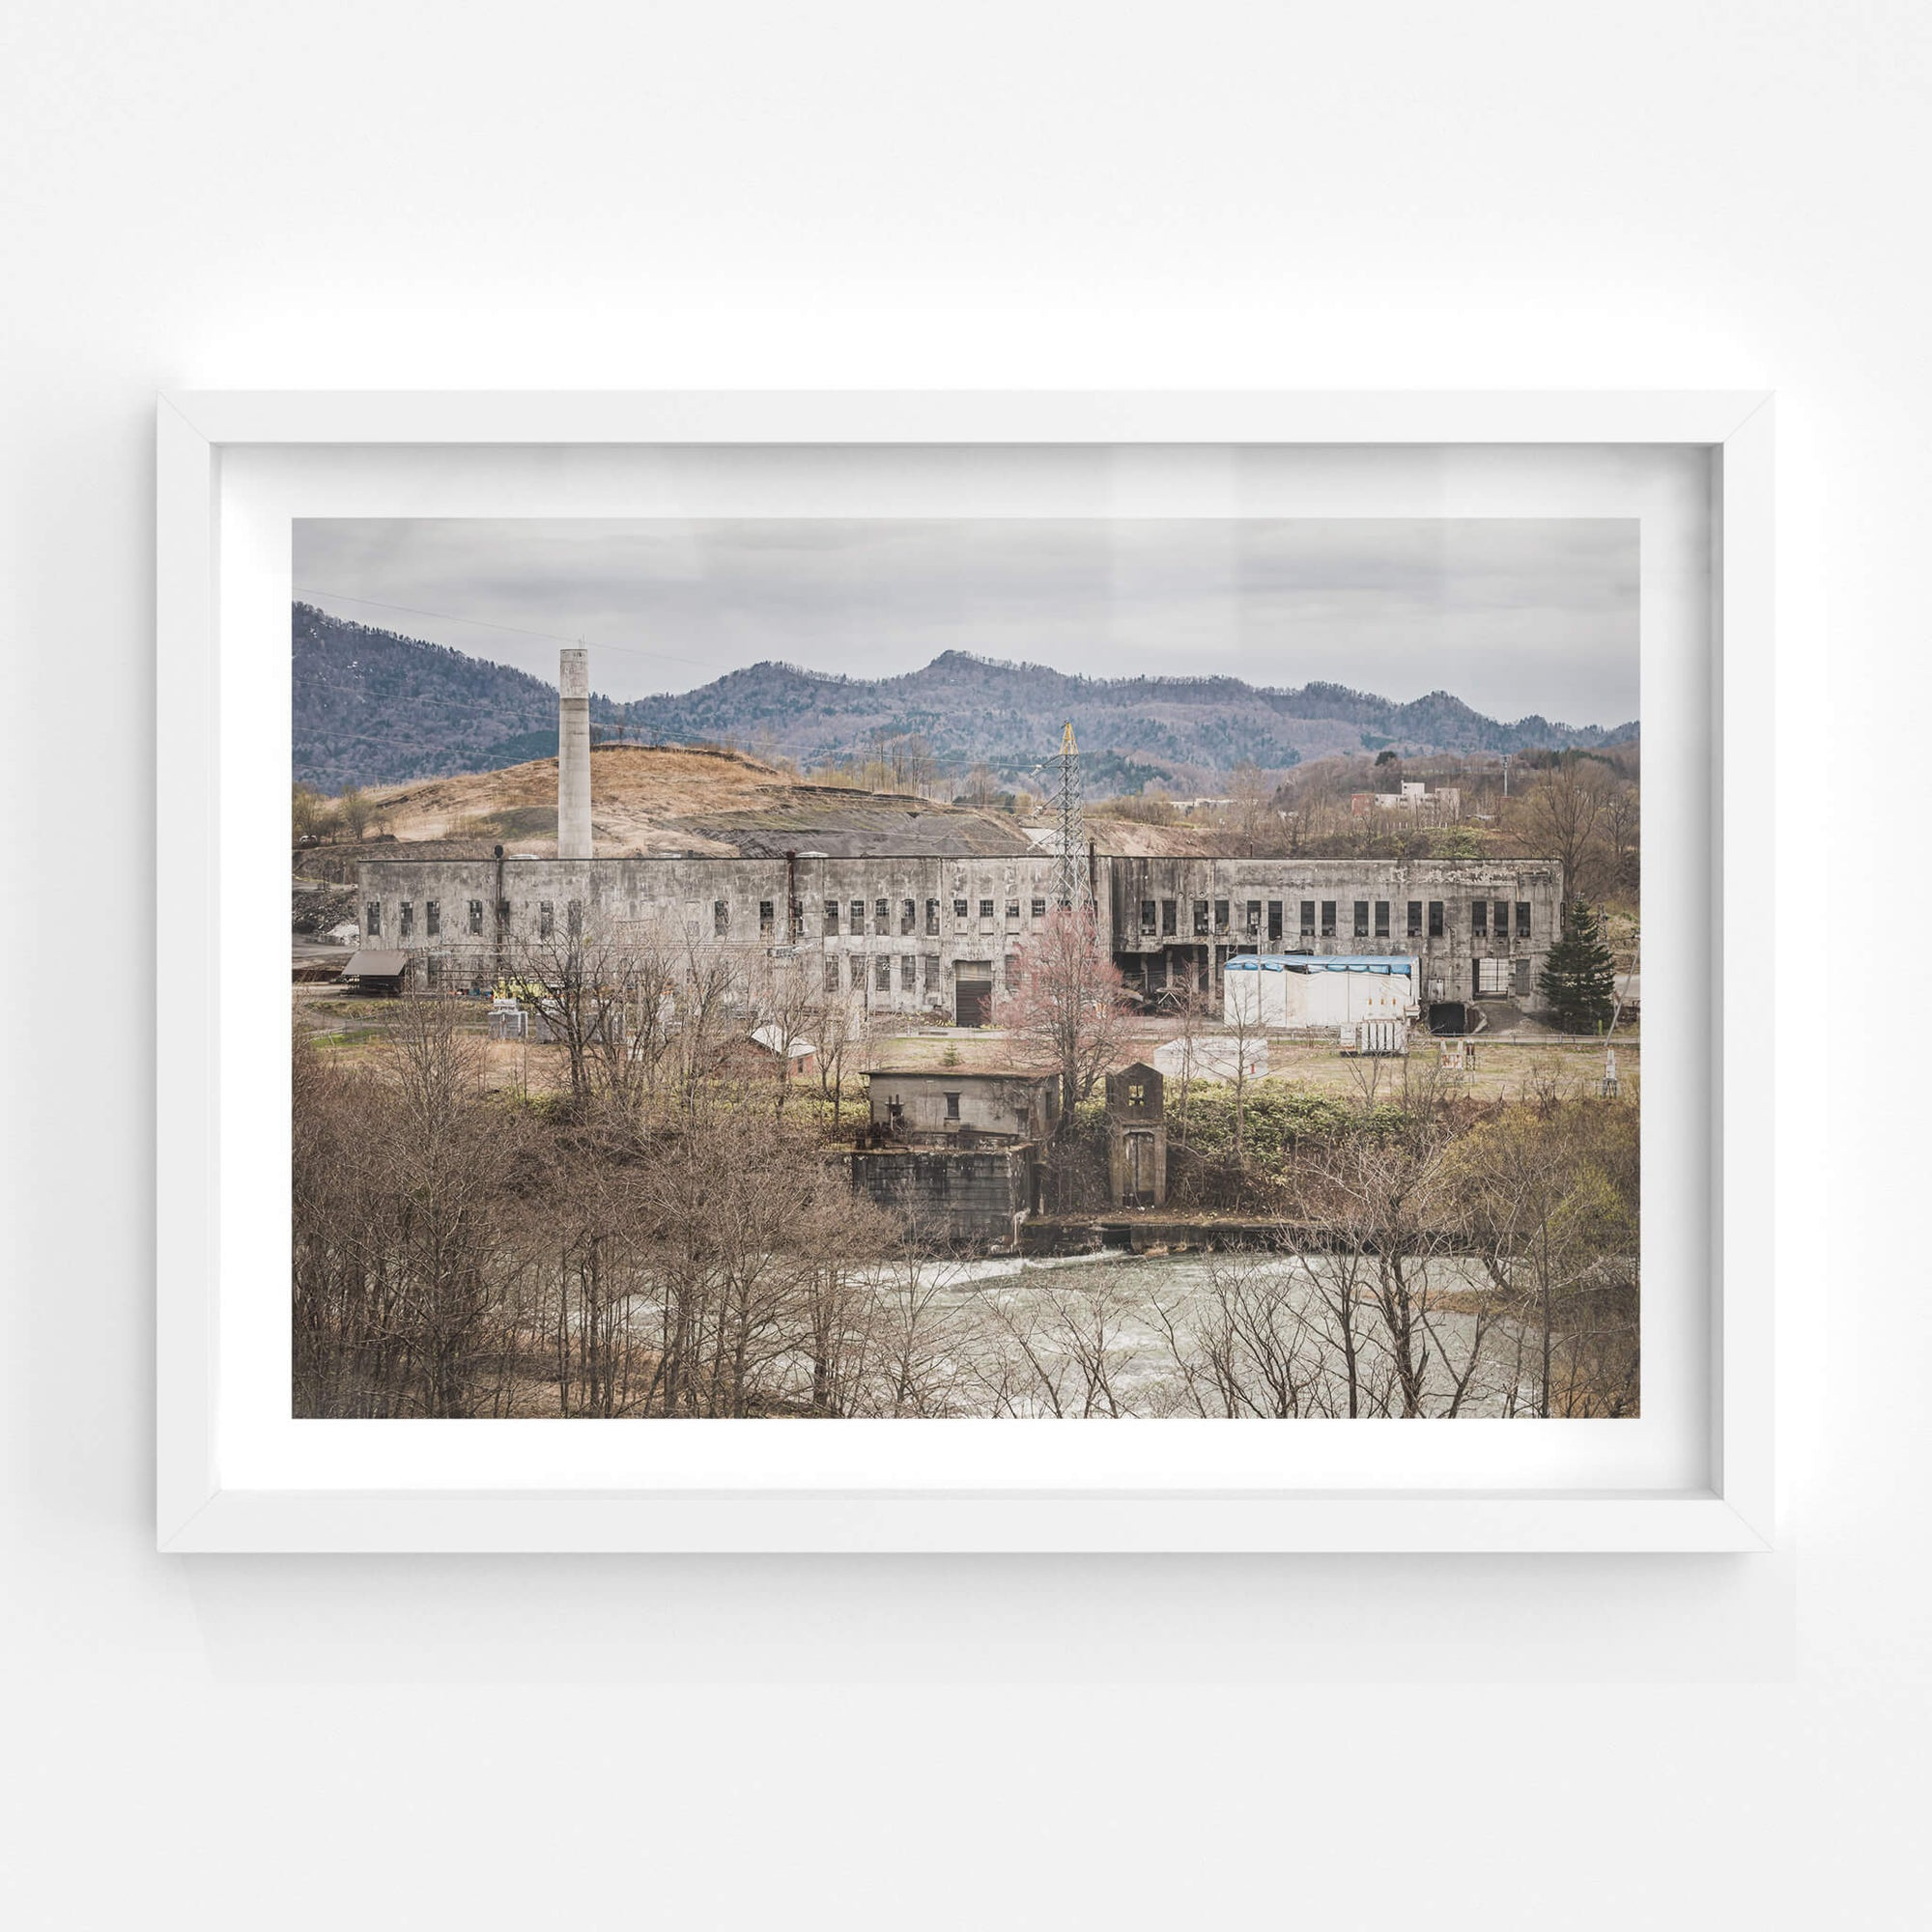 Shimizusawa Power Plant | Shimizusawa Thermal Power Plant Fine Art Print - Lost Collective Shop